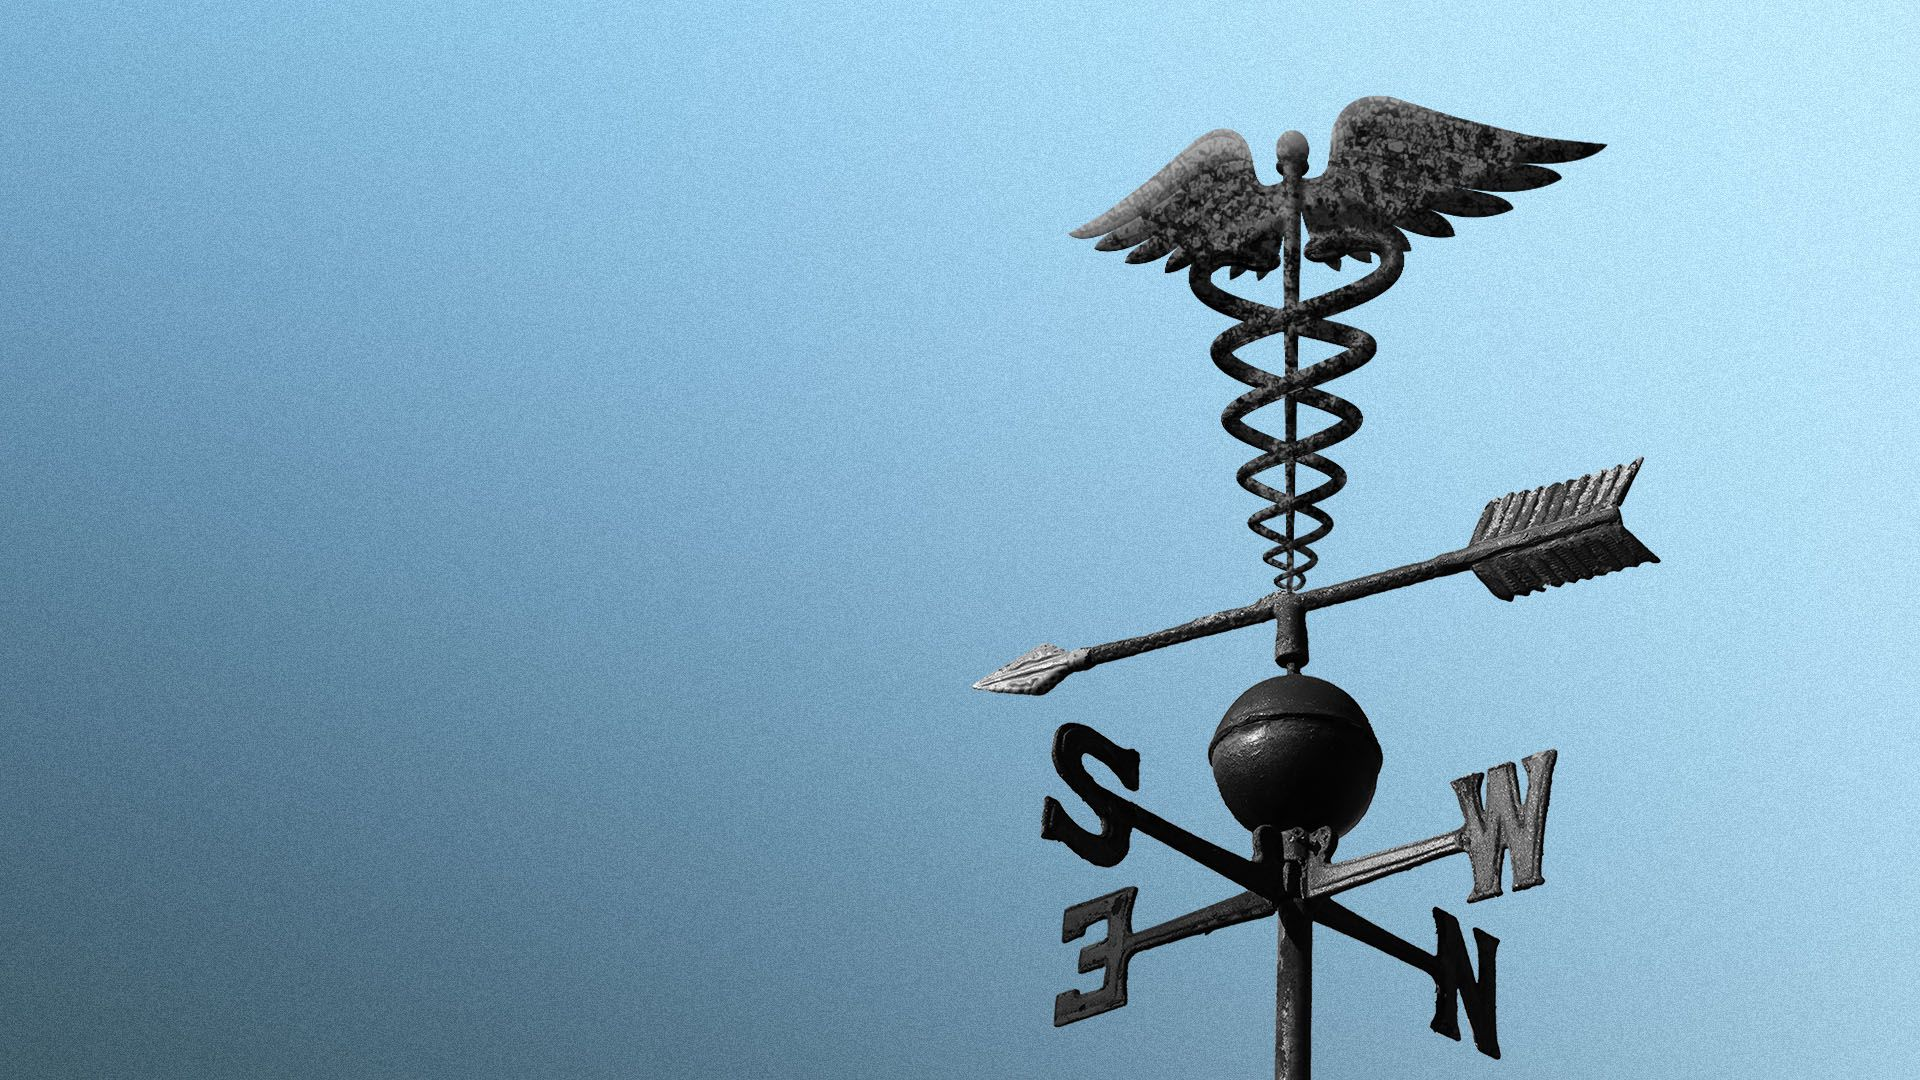 Illustration of a weathervane with a caduceus at the top point towards darker skies